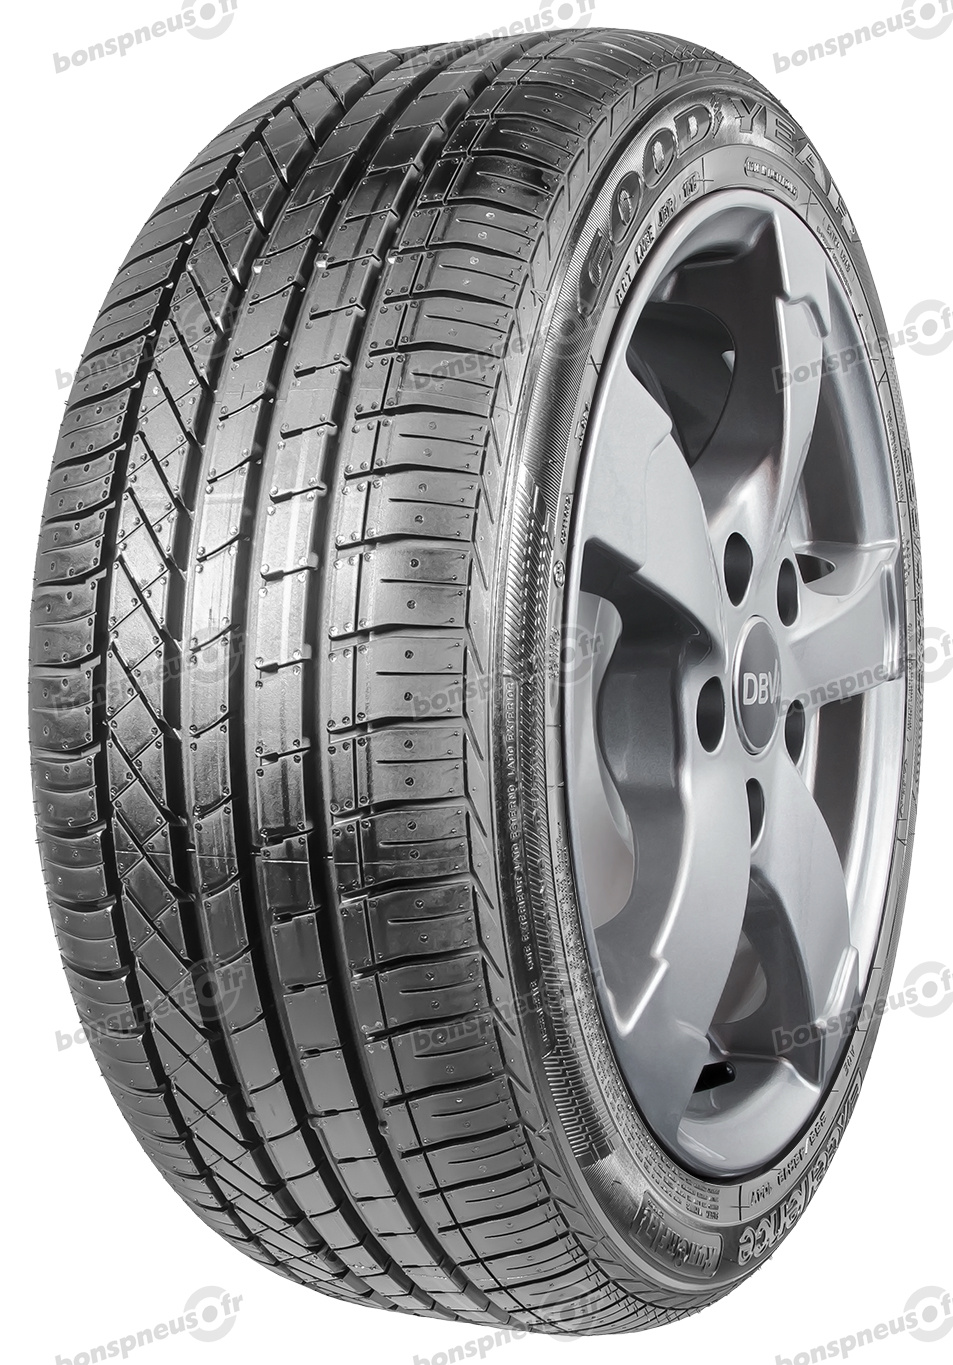 225/50 R17 98W Excellence XL ROF  Excellence XL ROF